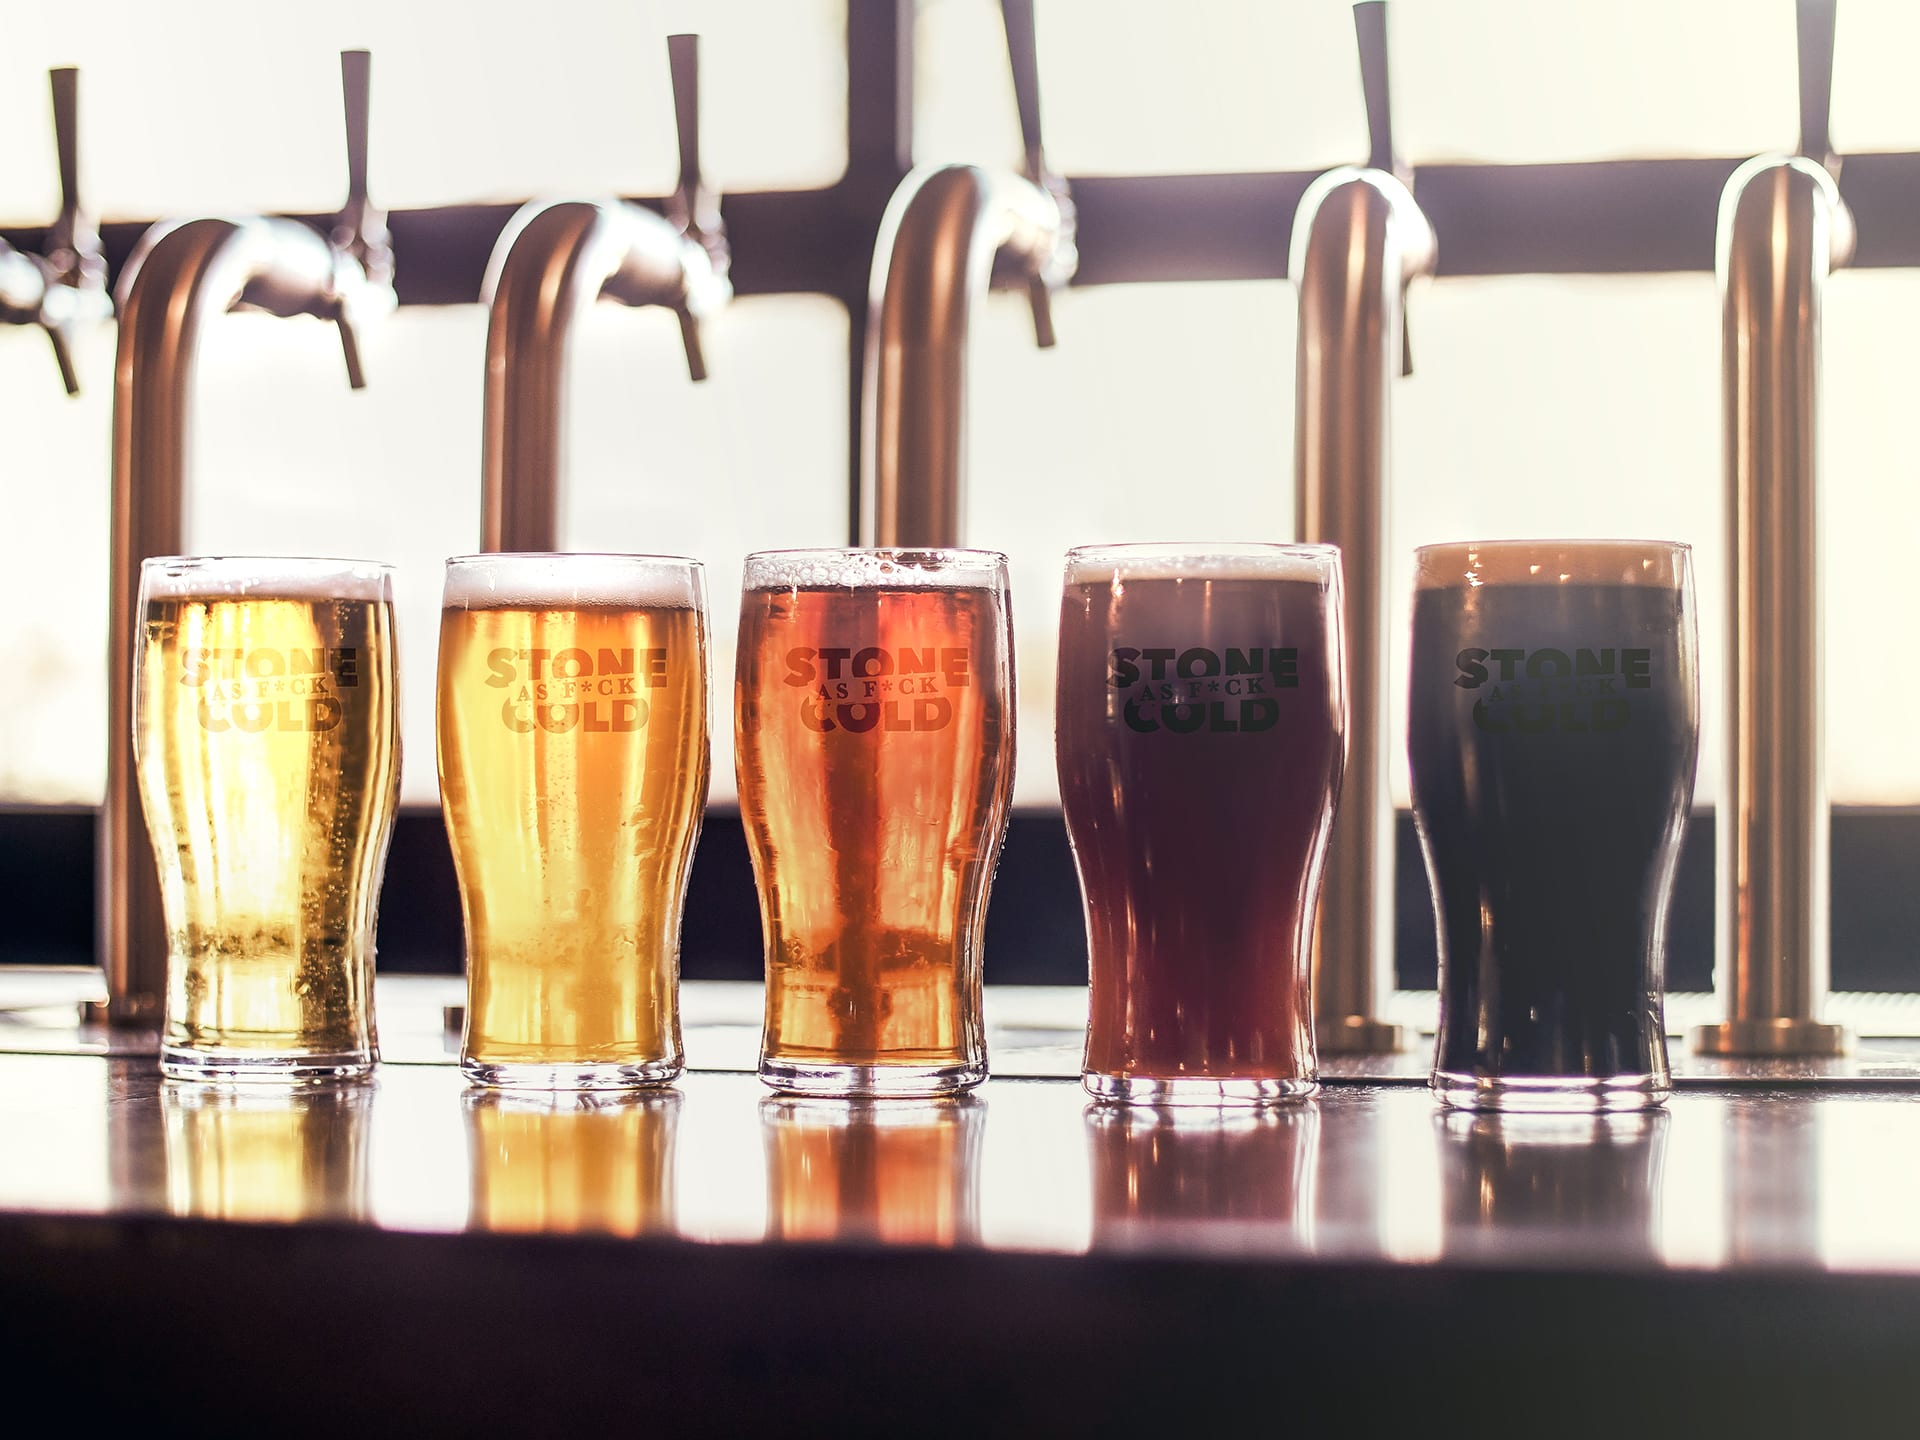 Stone Cold Alcohol Free Beer Pint Glasses - In front of Beer Taps